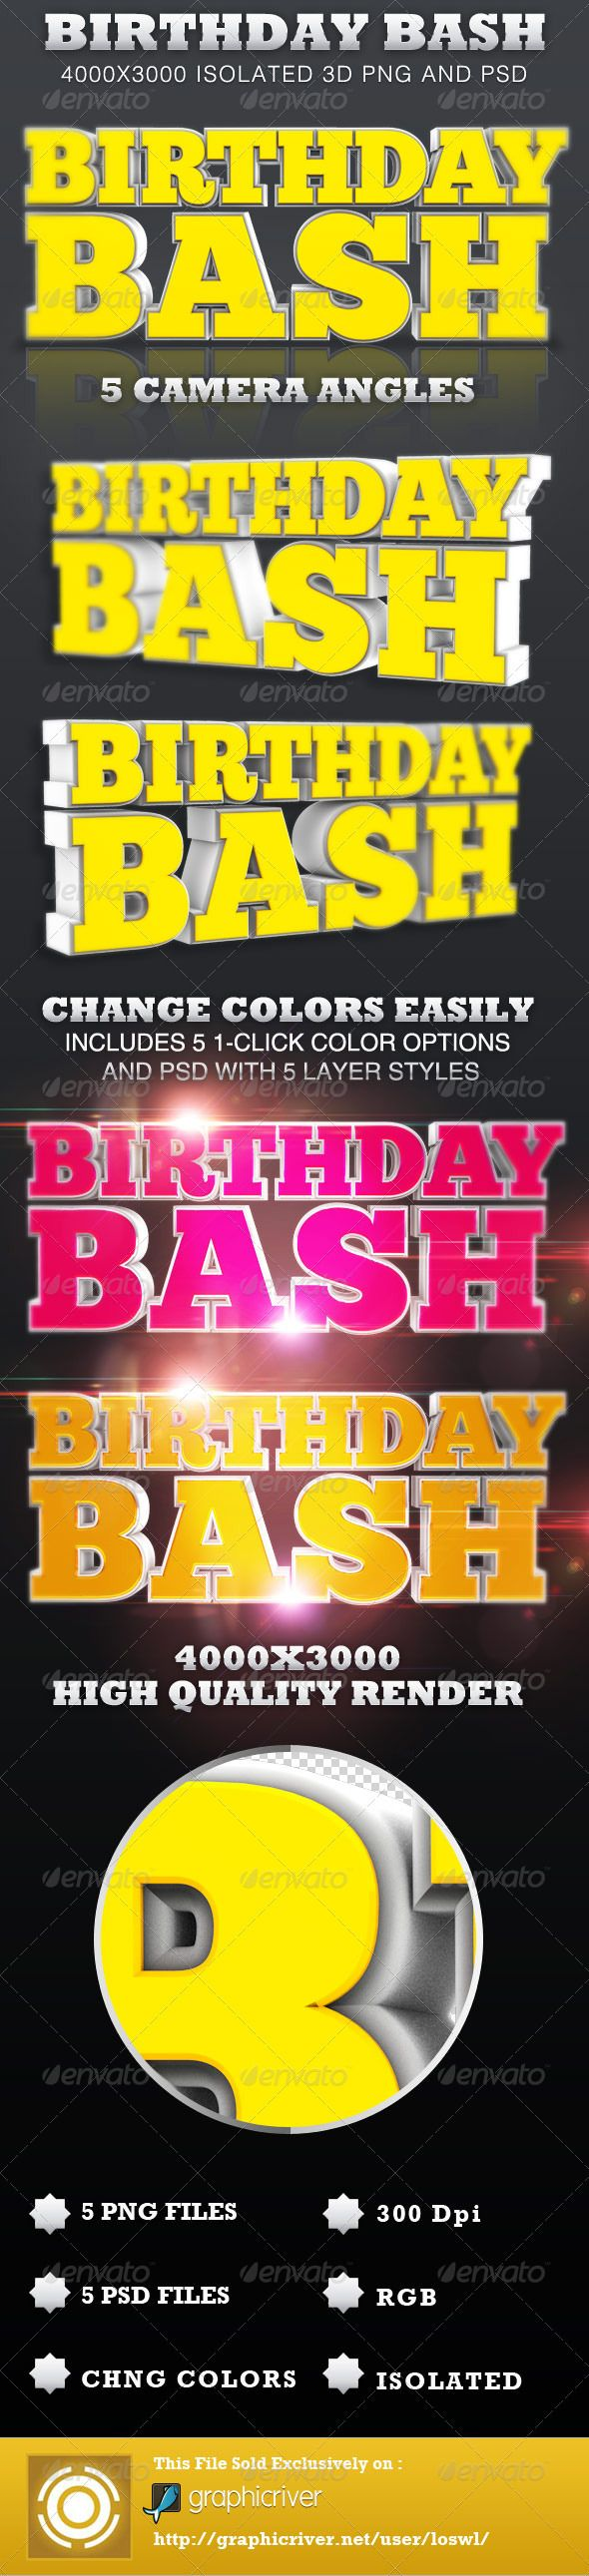 Birthday Bash Isolated 3D Text Objects  #GraphicRiver           	 These Birthday Bash Isolated 3D Text Objects are sold exclusively on graphicriver, they can be used for design projects for Birthday Parties, Posters, Event Flyers, etc. In this package you'll find 5 Transparent Png files and 5 Photoshop files which includes Five 1-click color options and a psd with five layer styles. The files are High Quality Renders, sized at 4000×3000 pixels at 300dpi.  TEXT IS NOT EDITABLE Fonts Used…